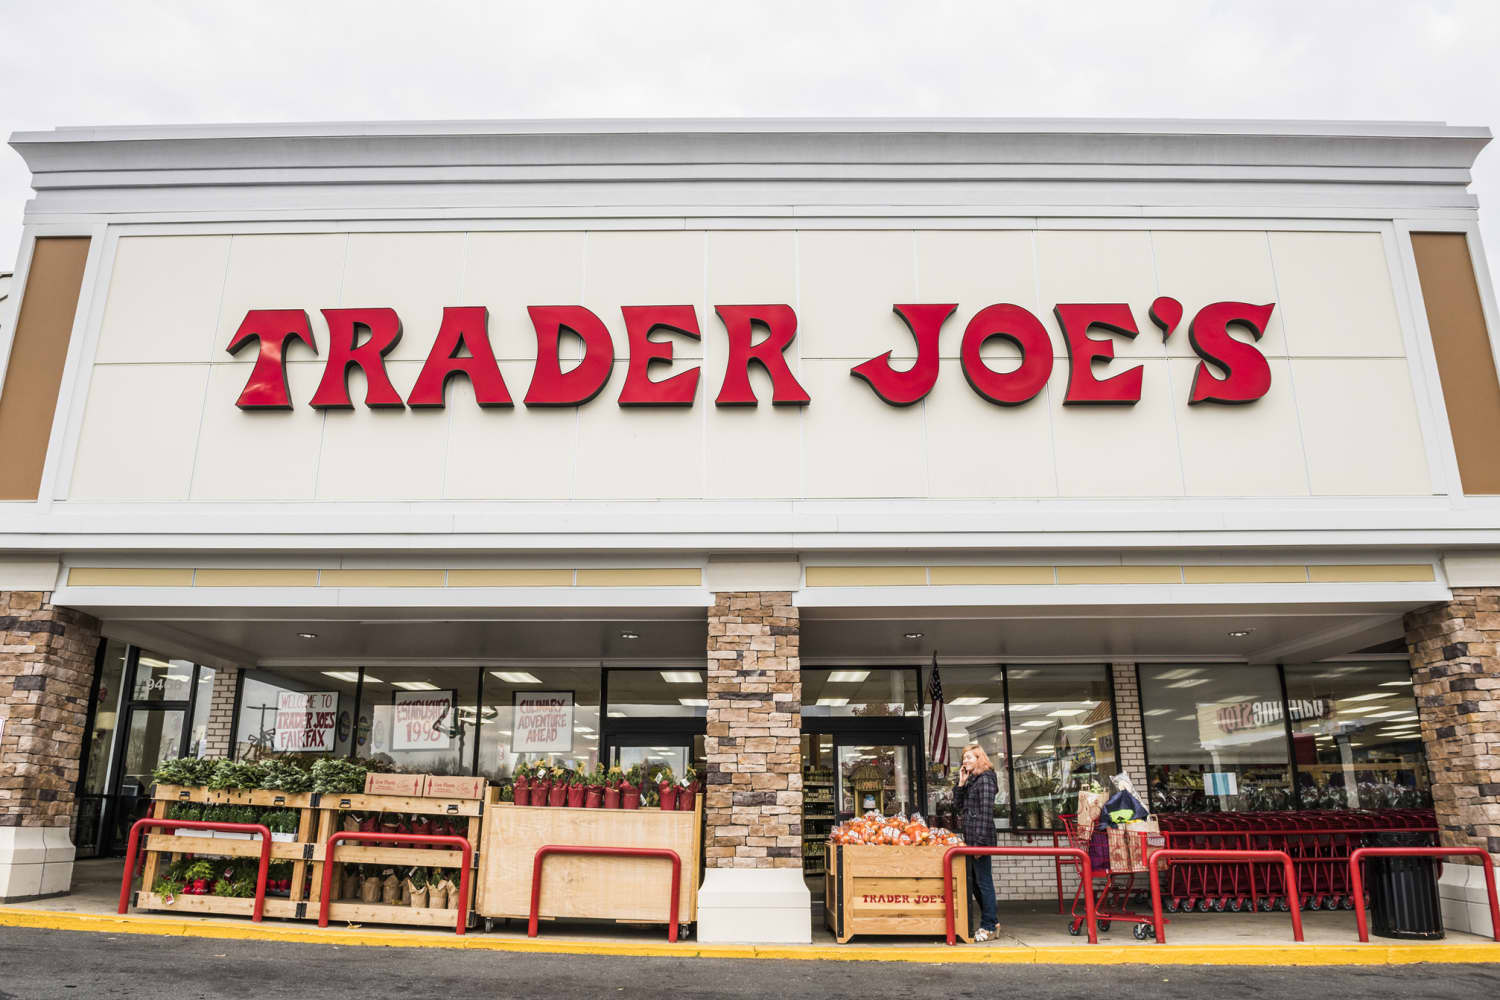 Trader Joe's Just Leaked Info on 3 New Spices That'll Hit Stores Soon